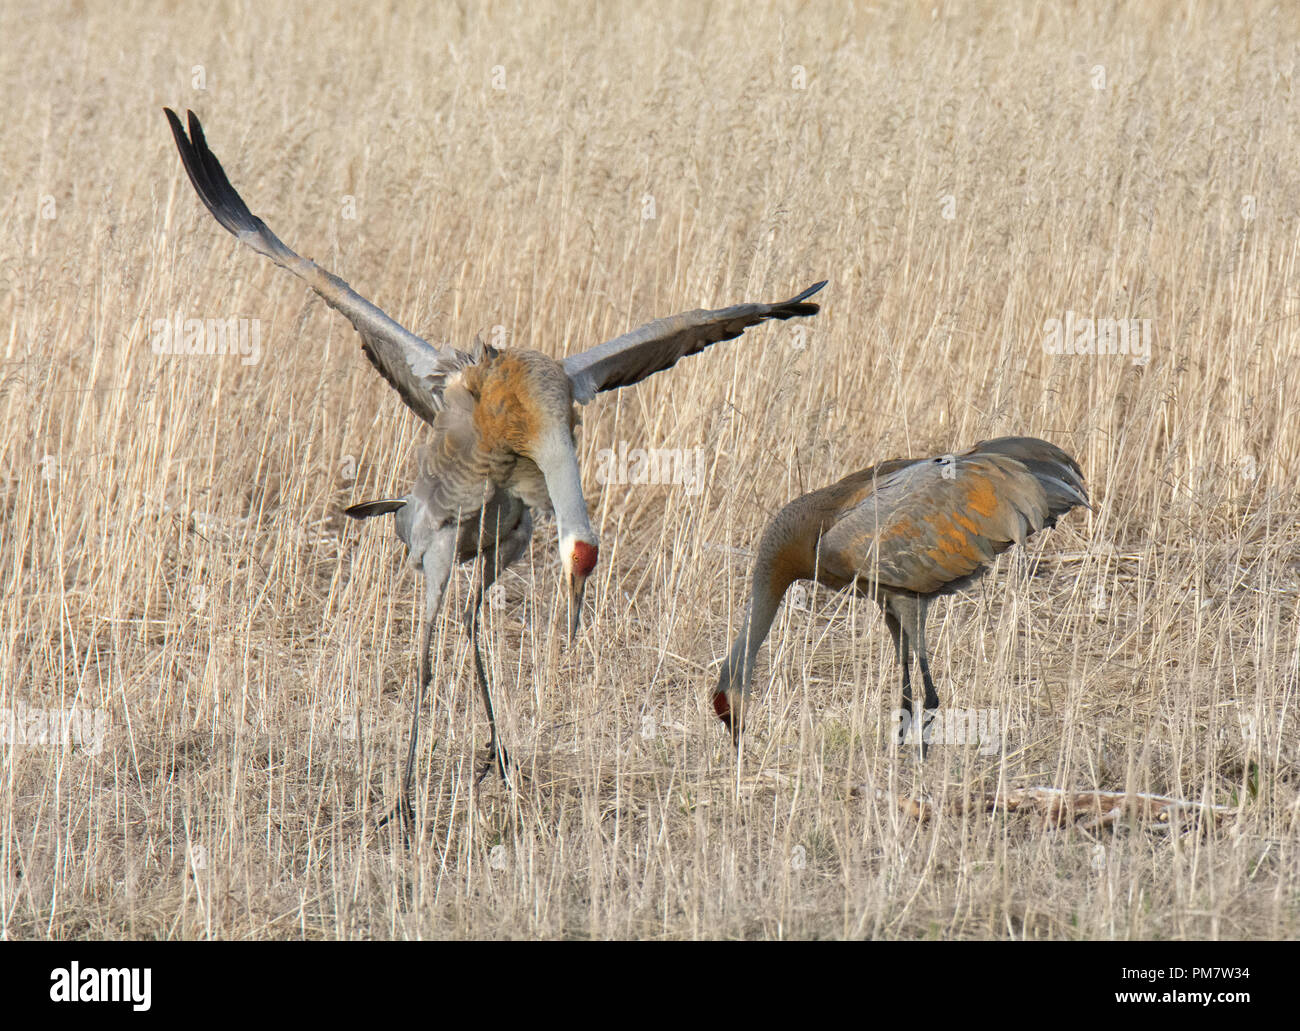 A male Sandhill crane spreads his wings wide and bows his head to a female - Stock Image